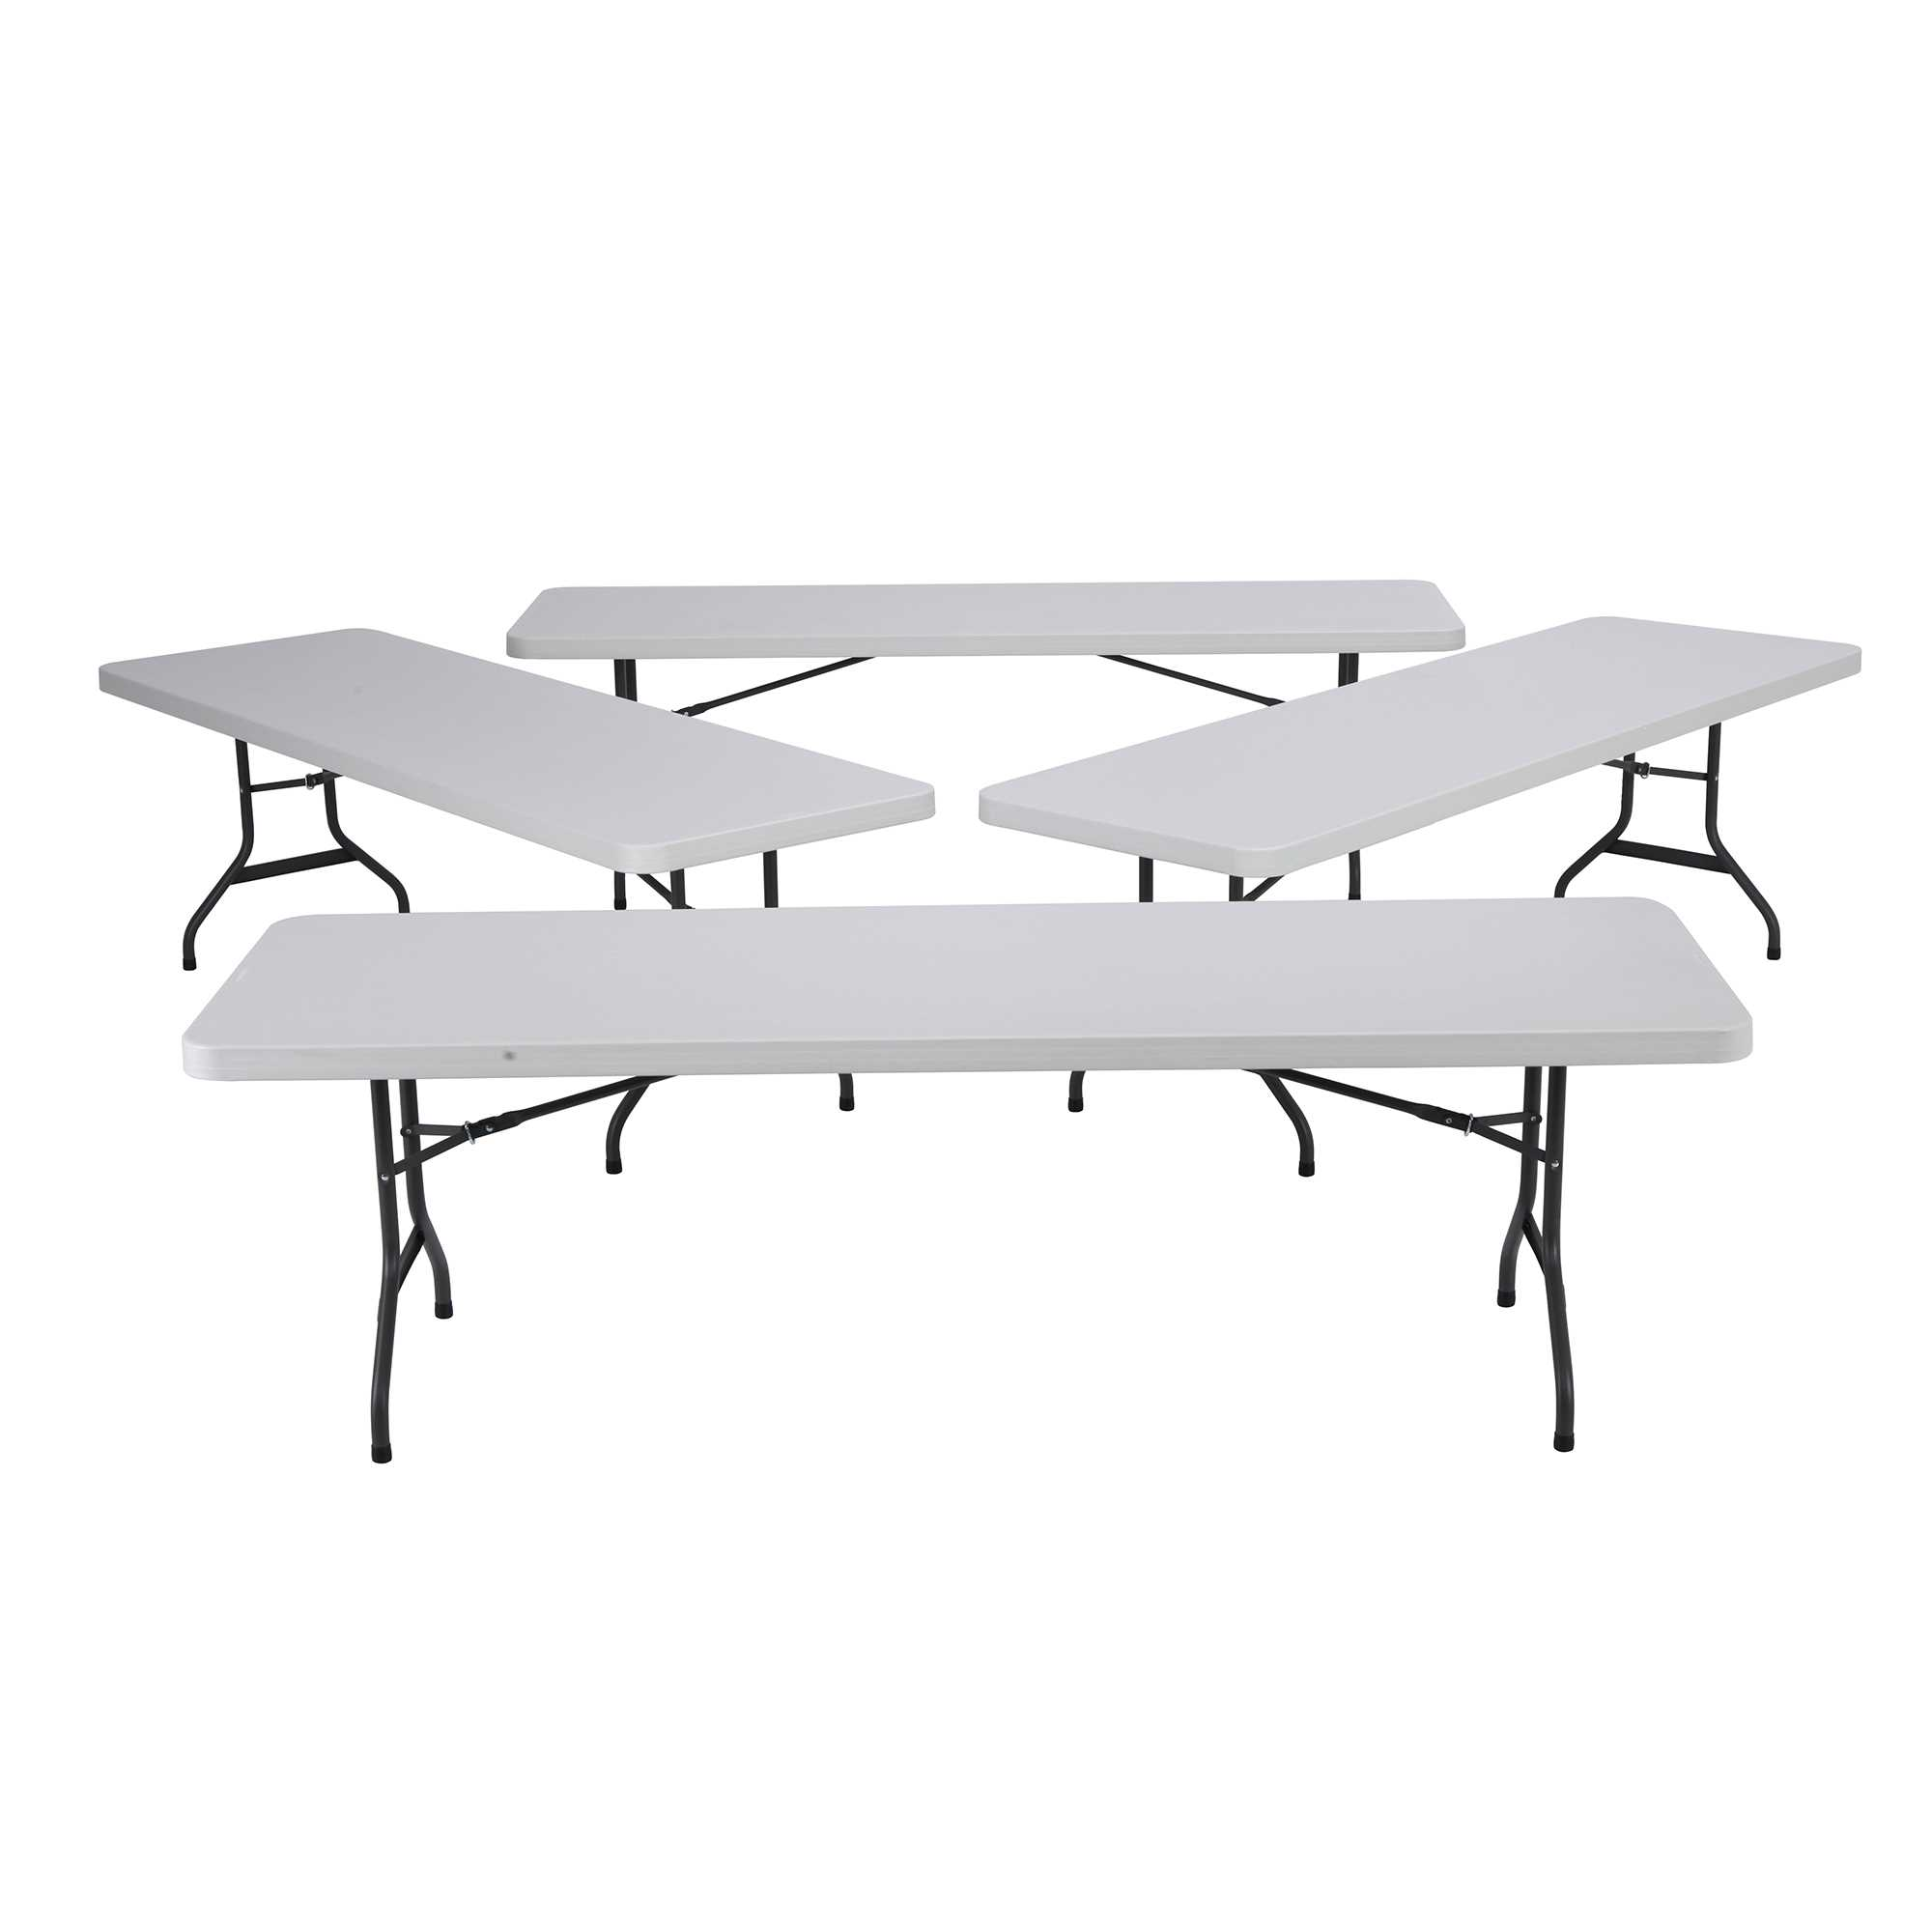 Lifetime 8-Foot Folding Table- 4 Pk (Commercial)